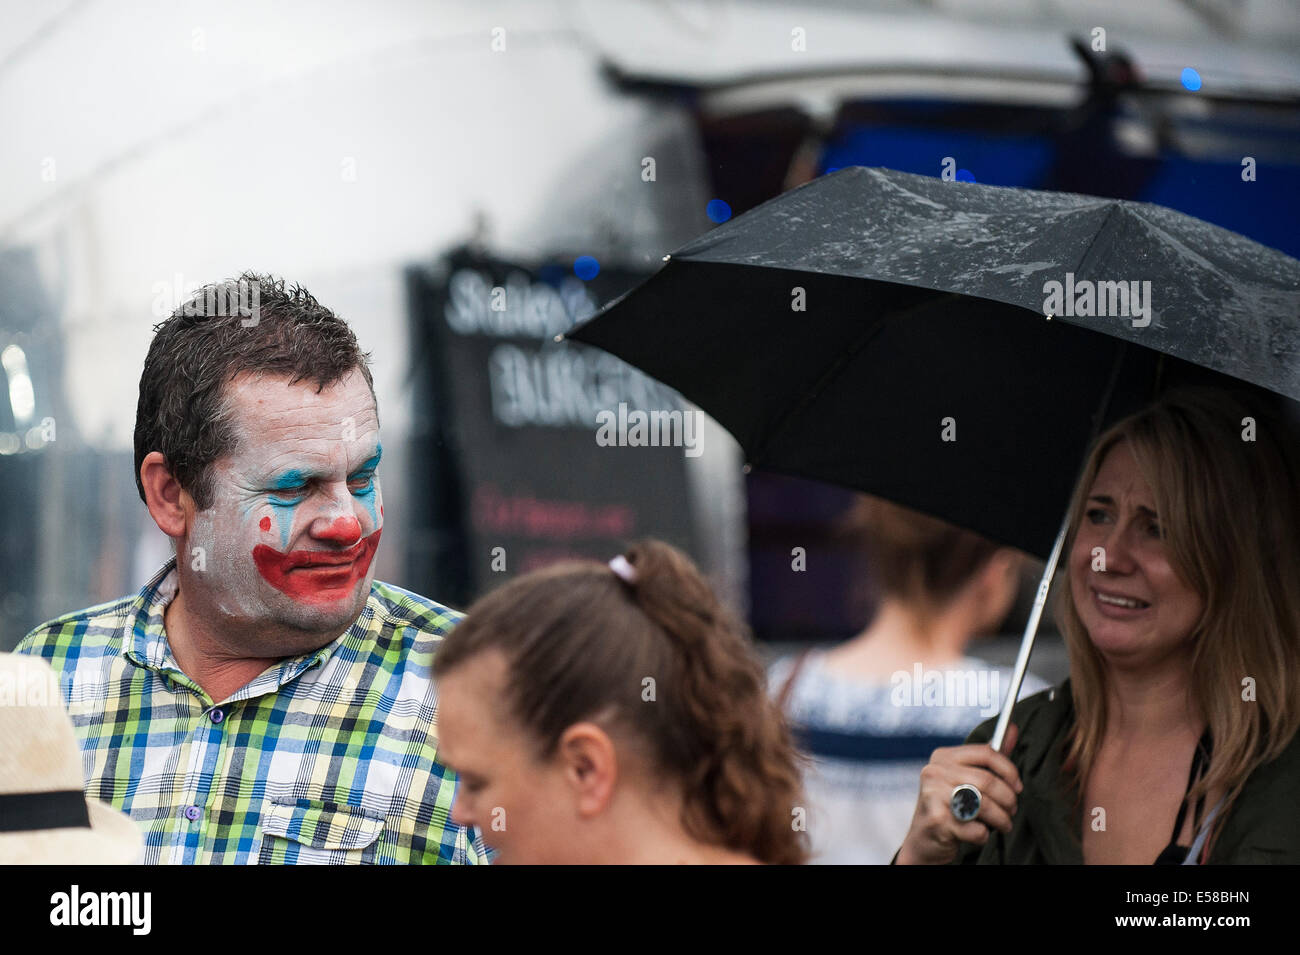 A man wearing clown makeup at the Brentwood Festival. - Stock Image